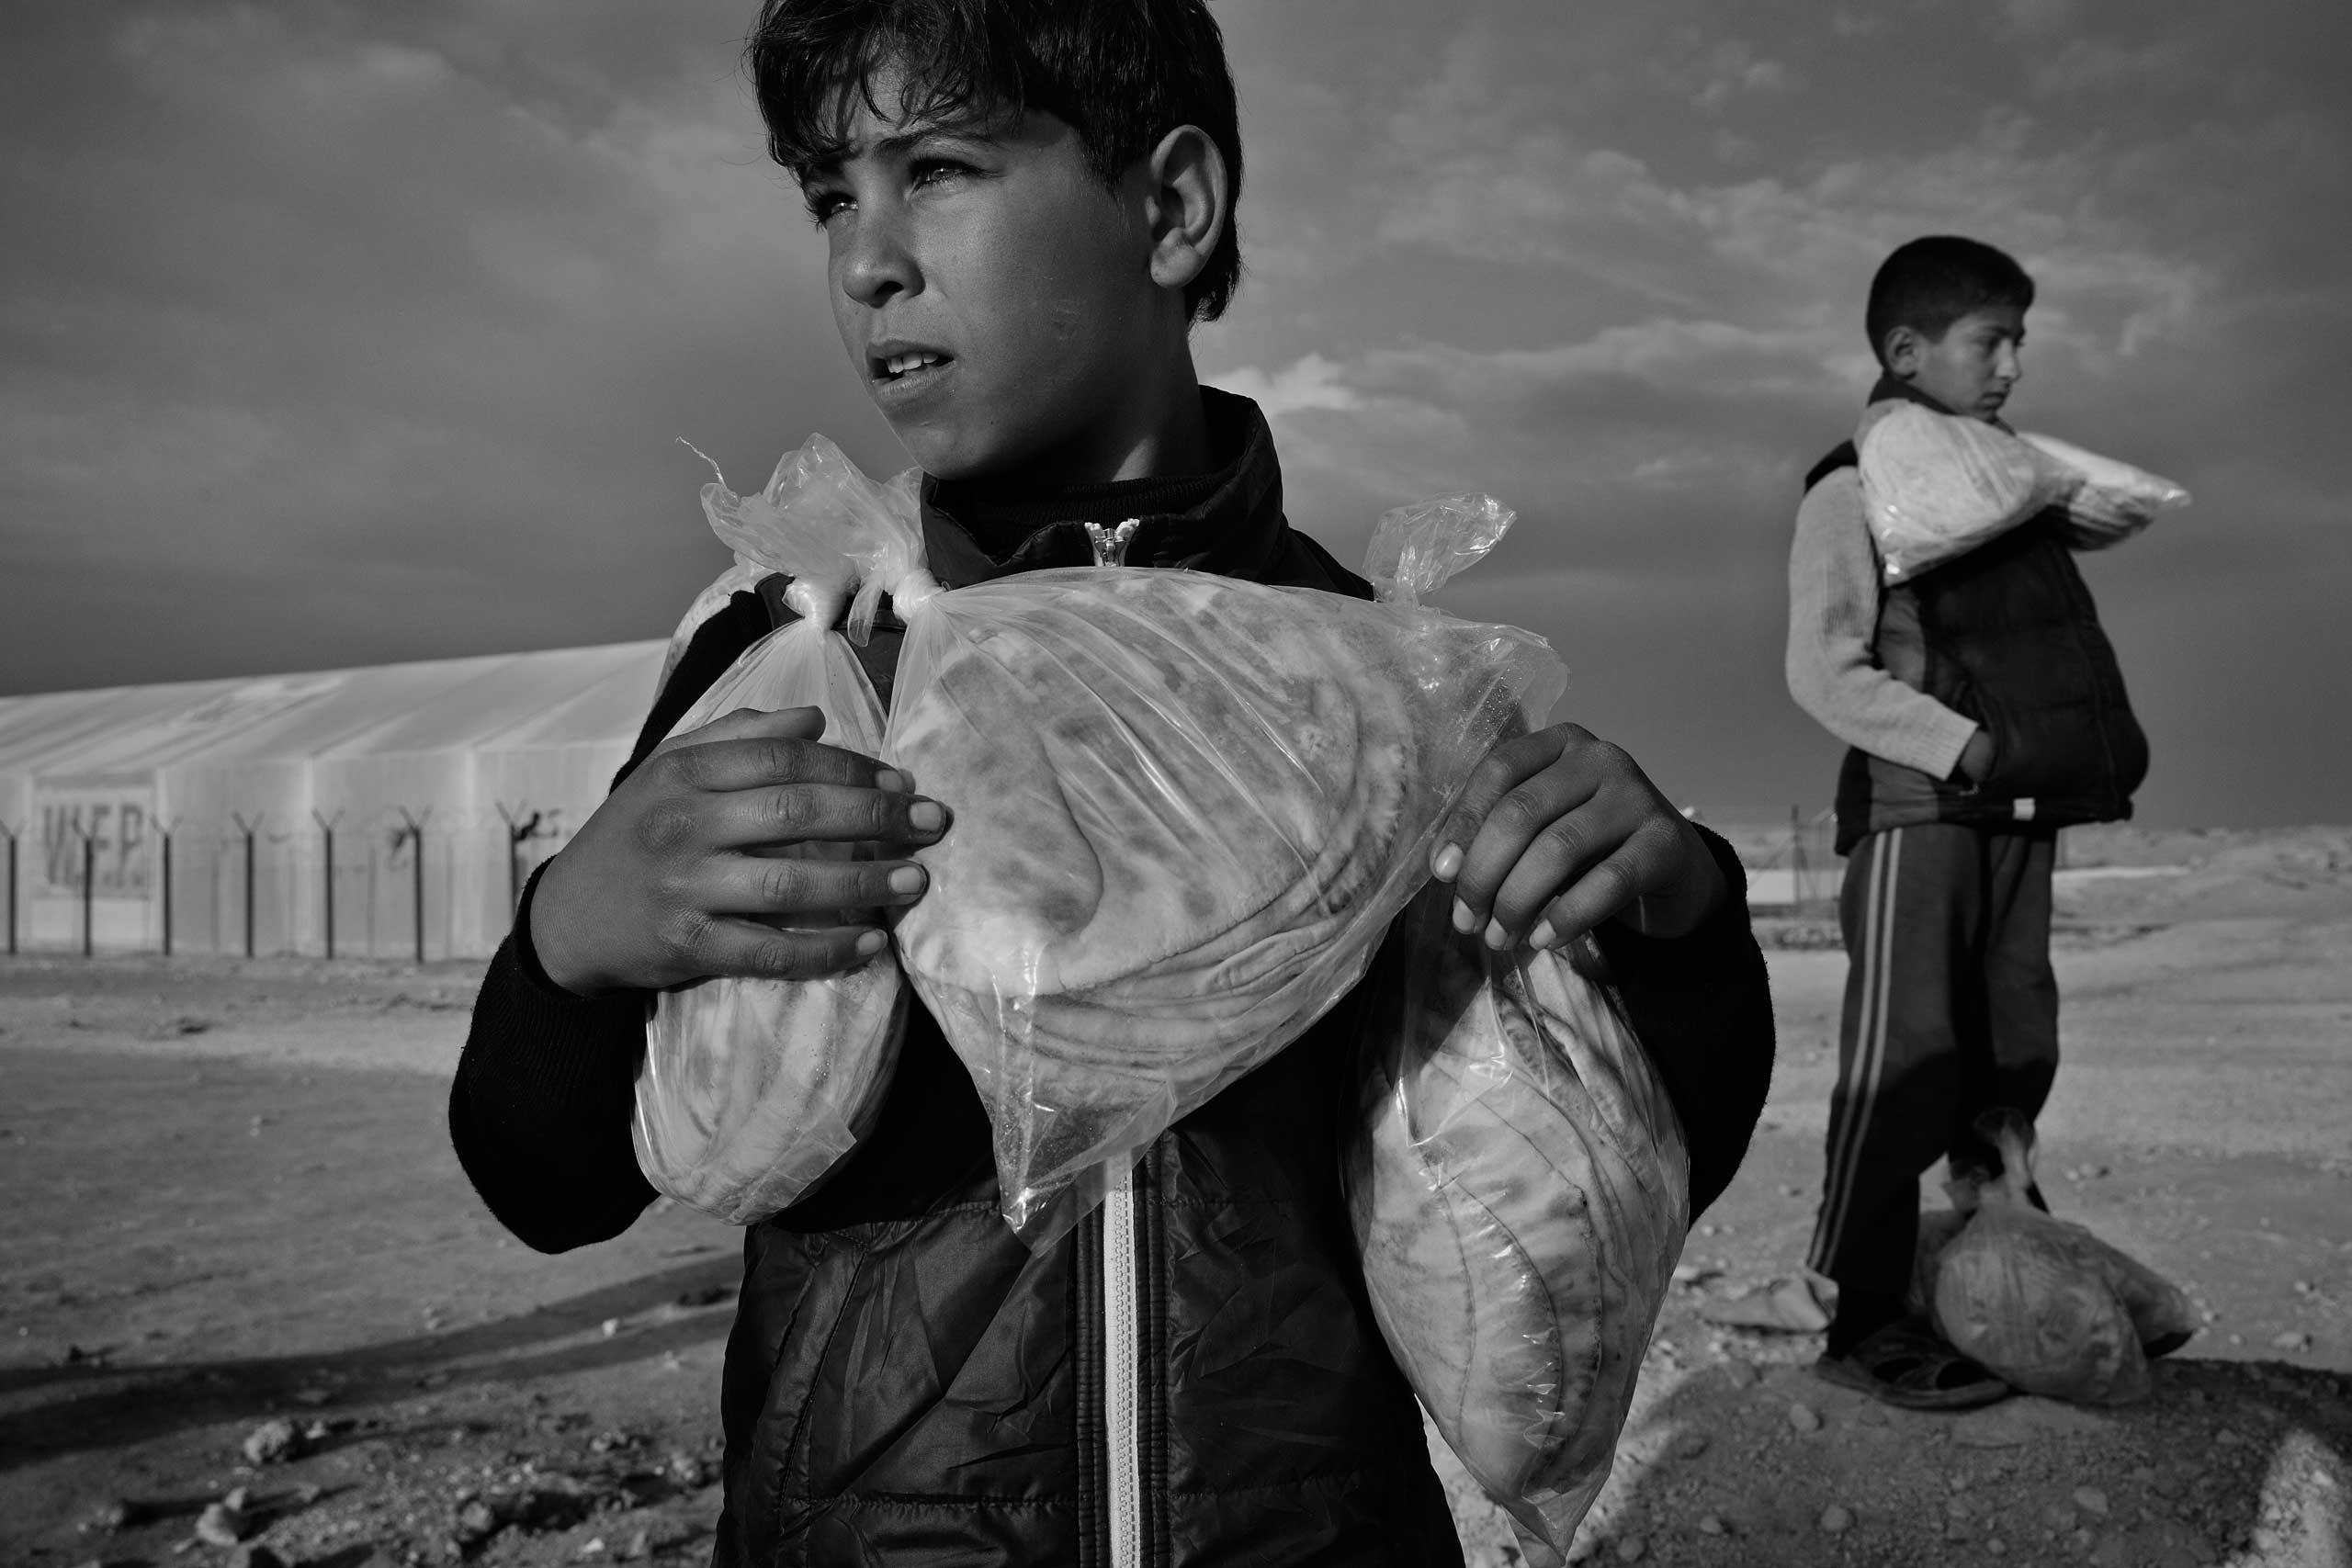 December 2013. Za'atari refugee camp, Jordan. Syrian boys carry their daily bread ration supplied by the World Food Programme.  From  Syrian Refugees by James Nachtwey